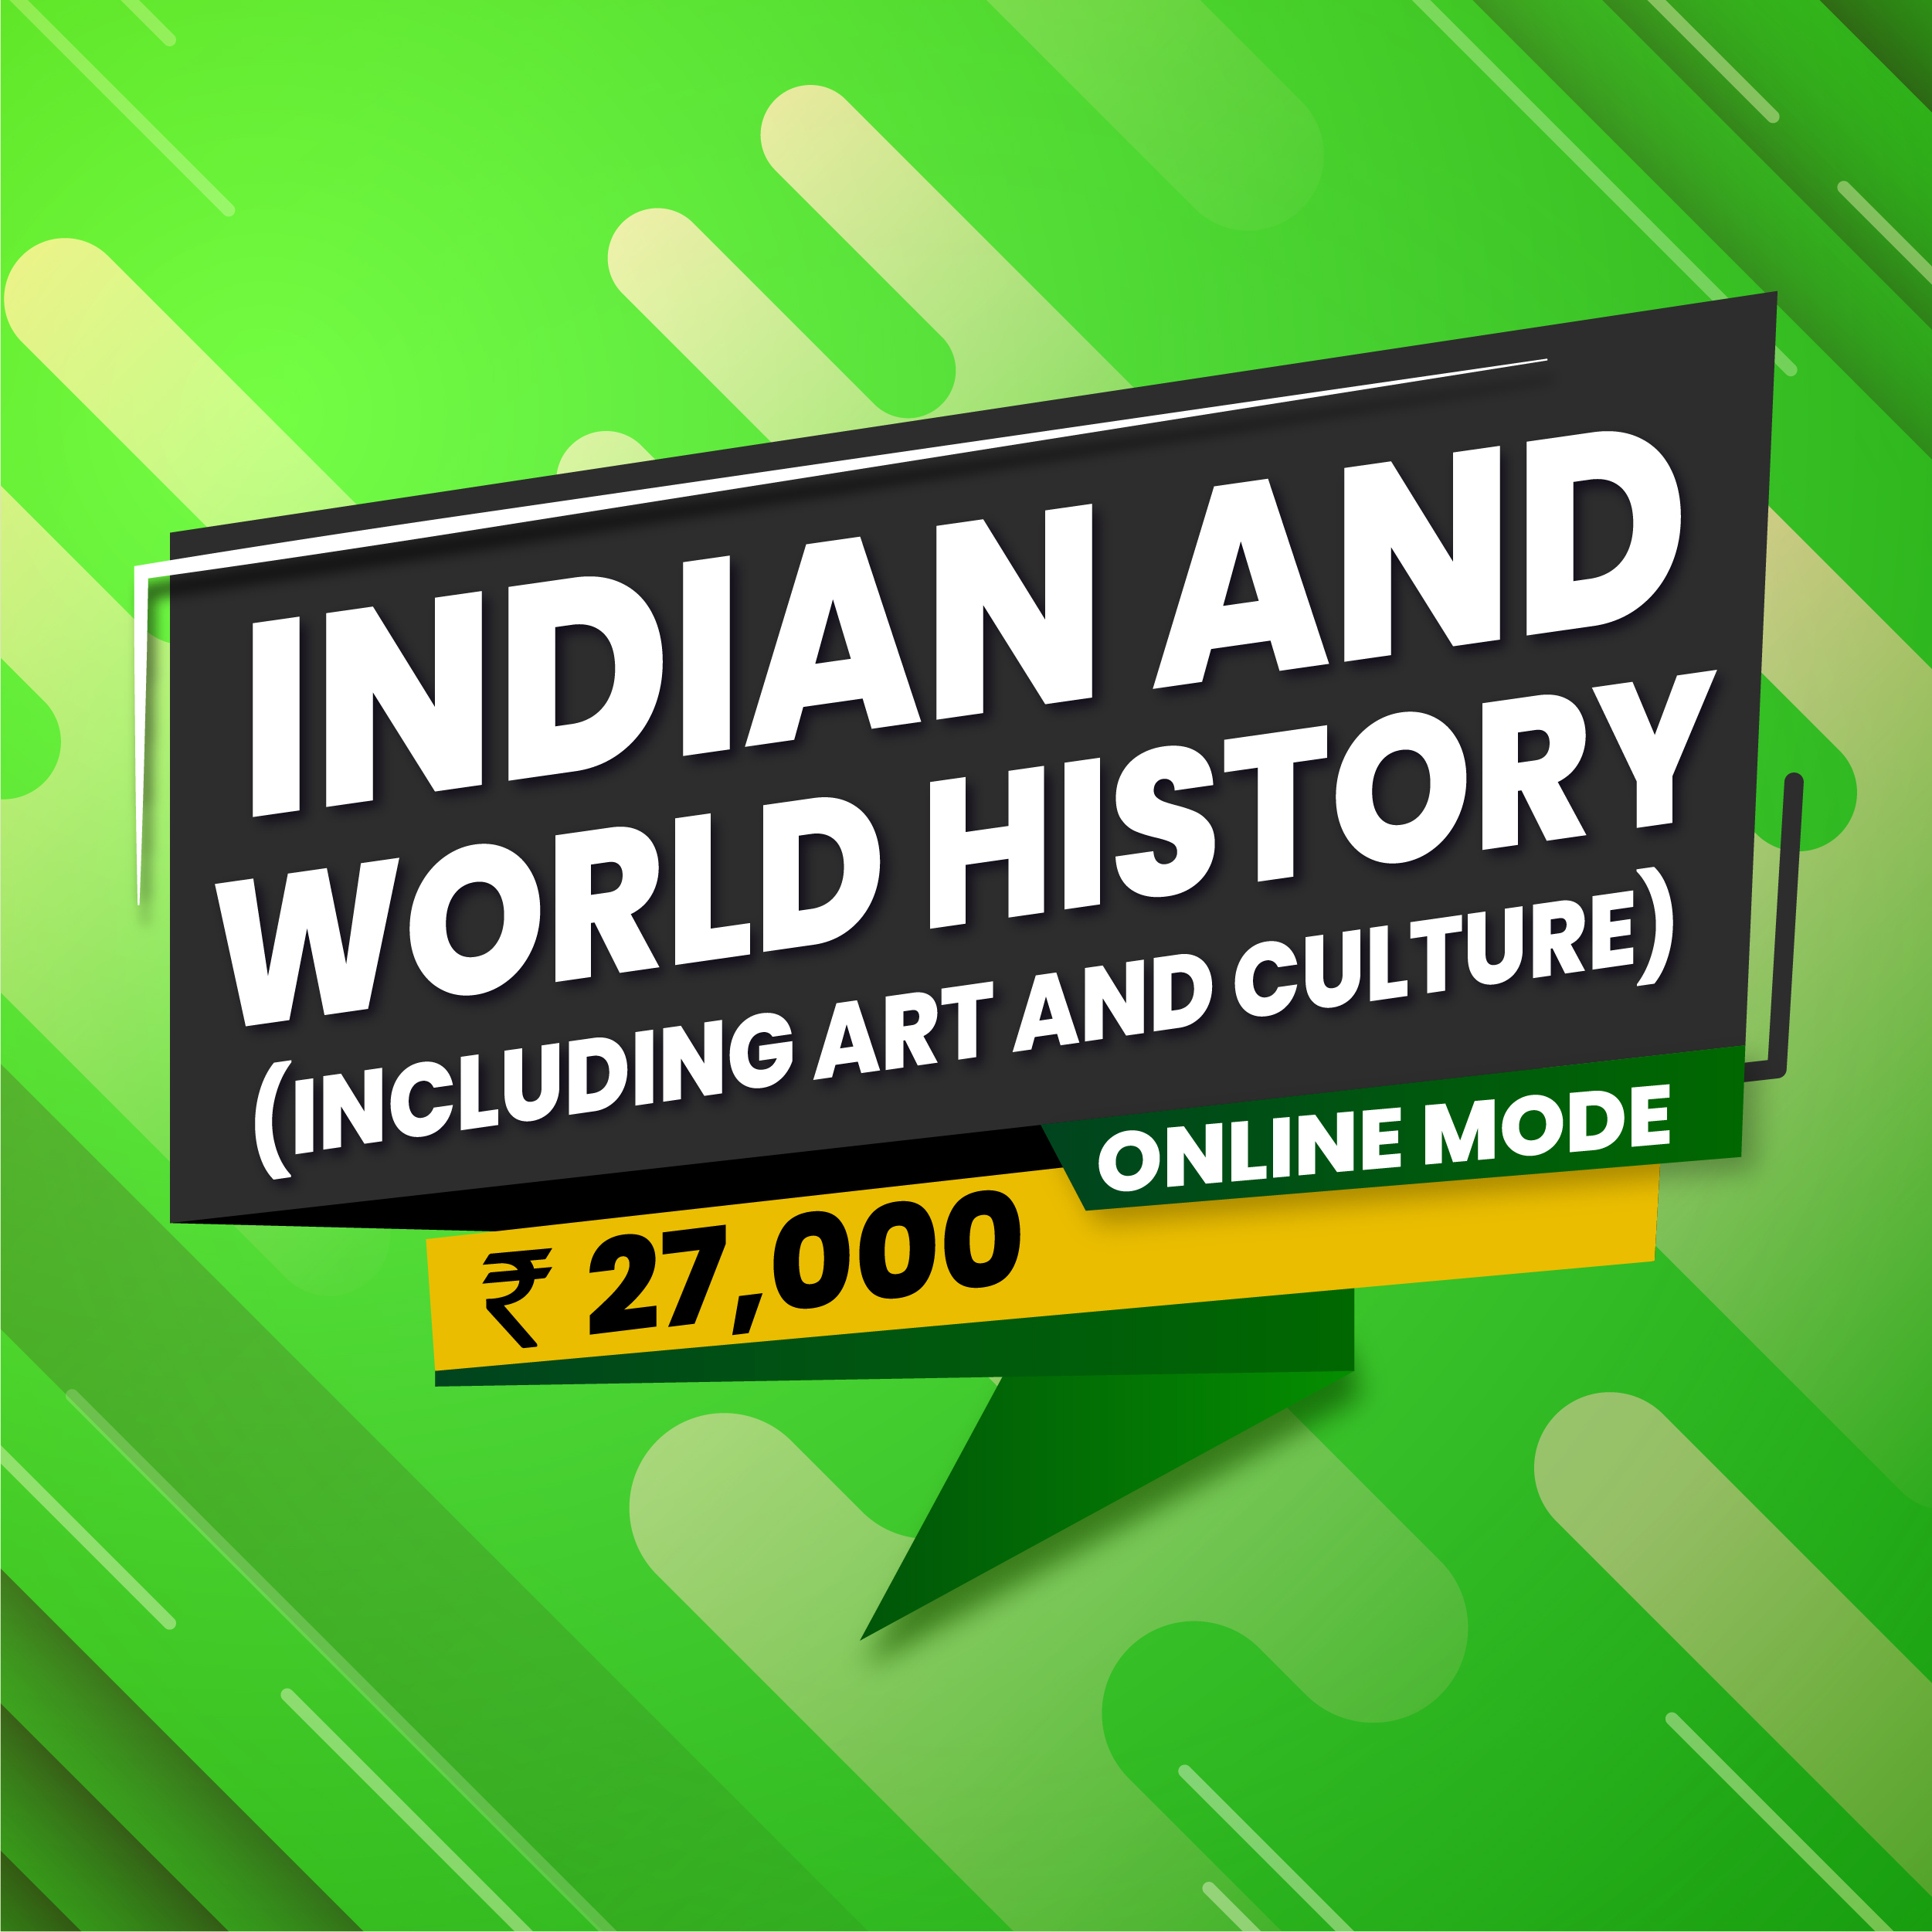 Indian and World History (Including Art and Culture)